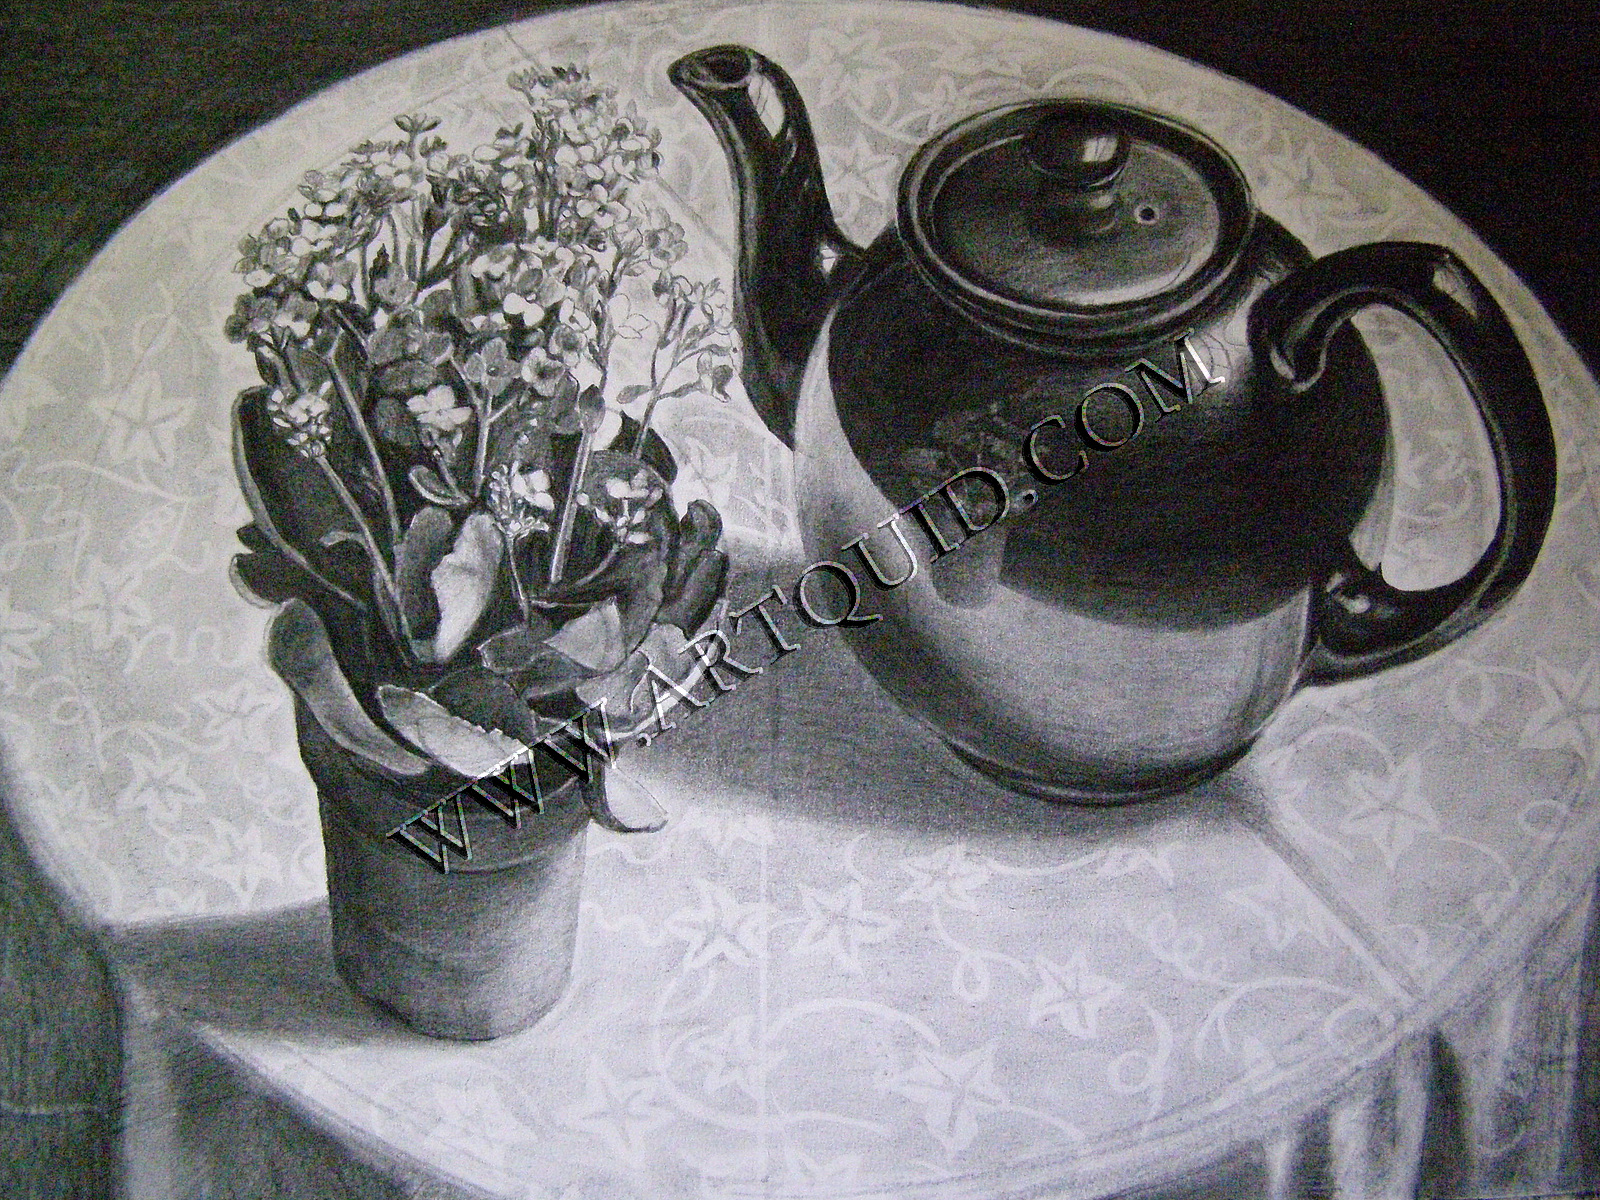 1600x1200 Drawings, Still Life With Teapot, Page 7826, Art By Independent